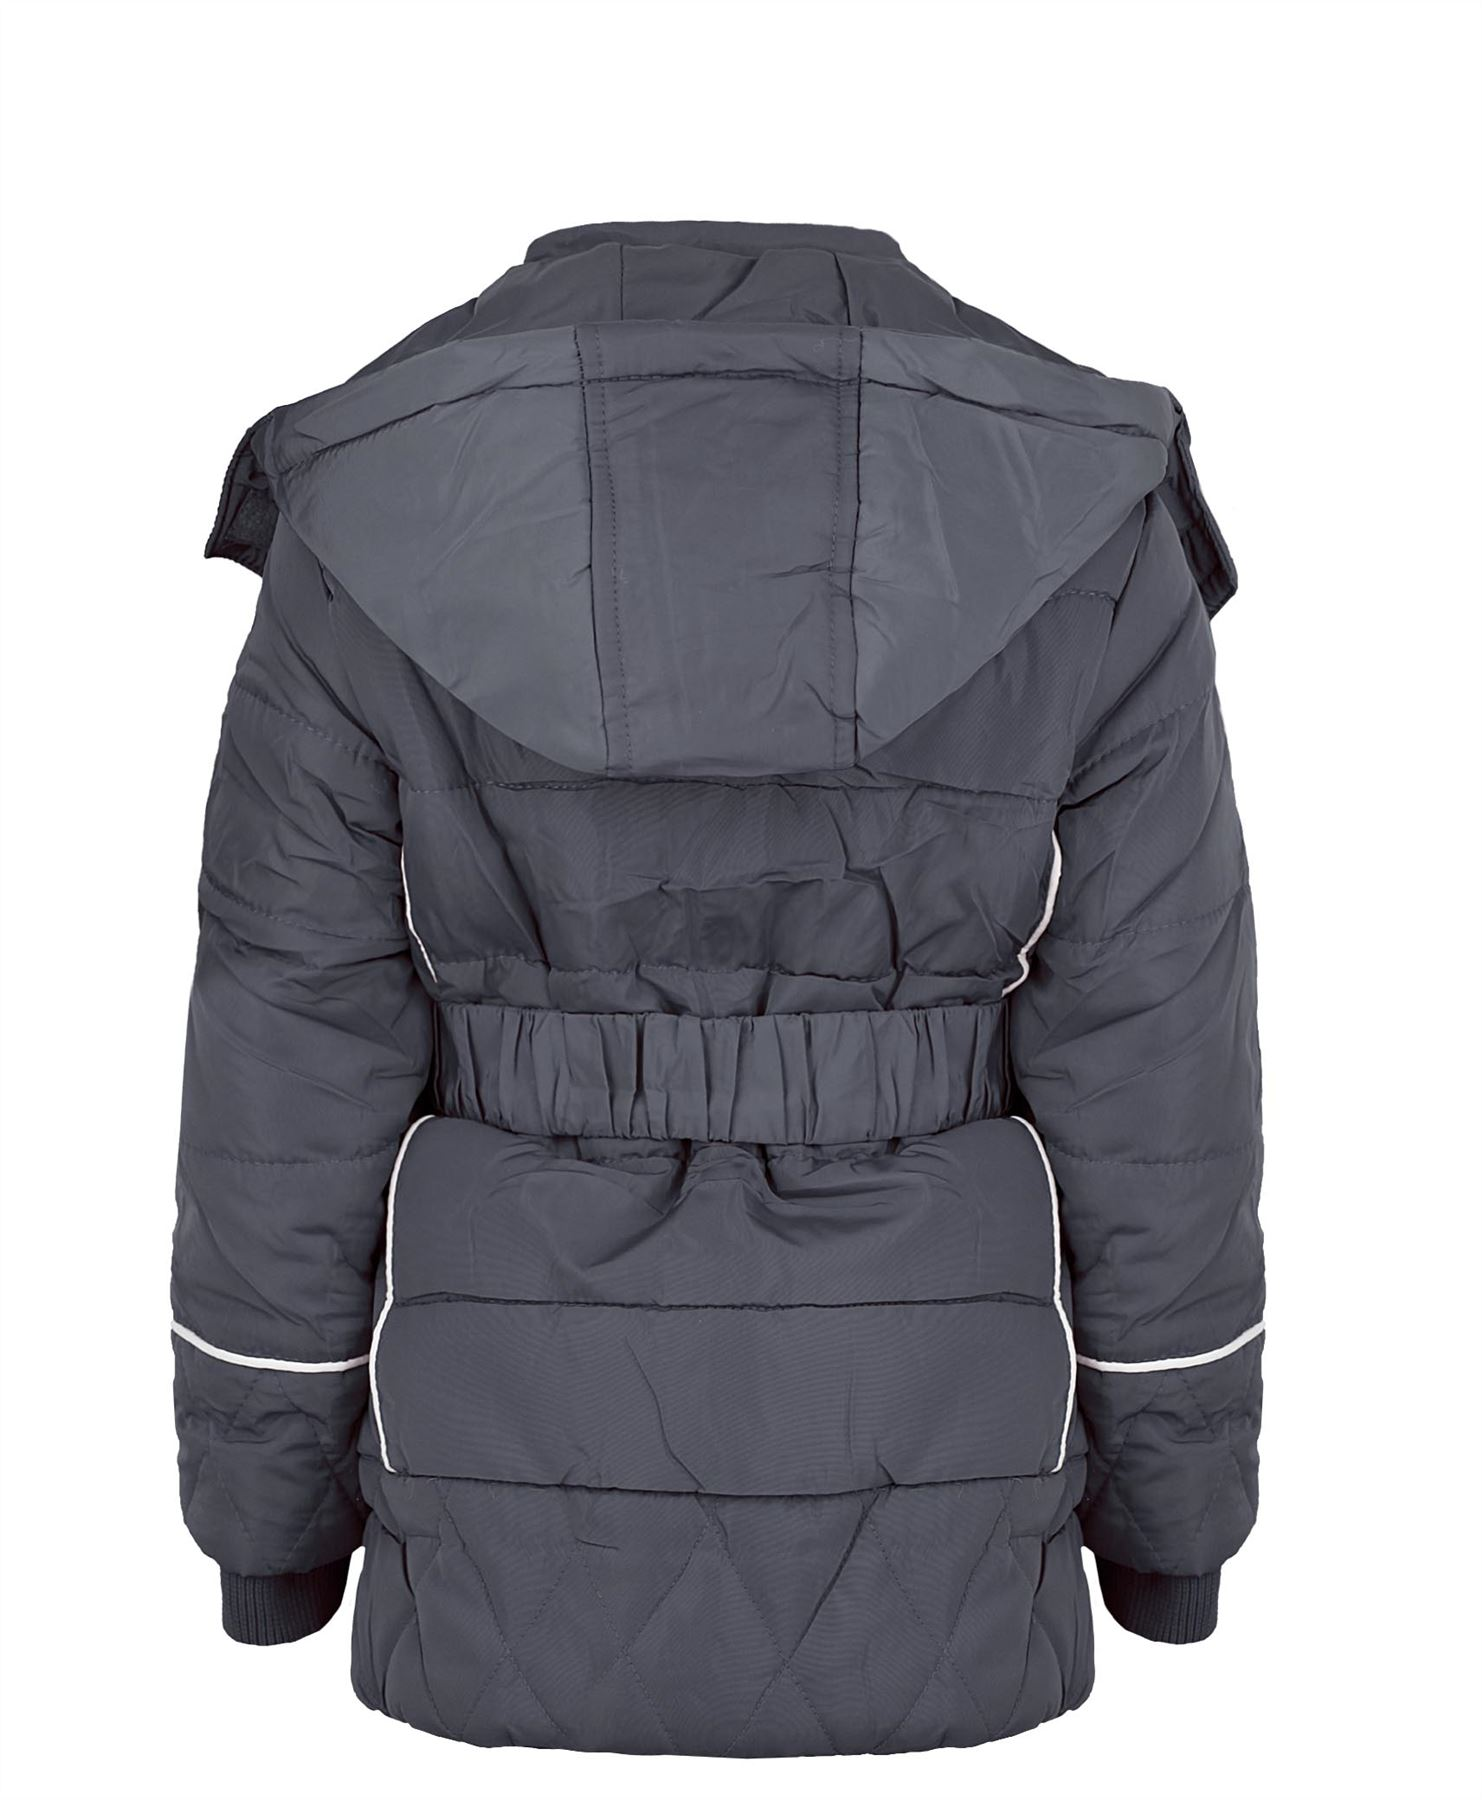 Buy low price, high quality quilted kids coat with worldwide shipping on bestsupsm5.cf